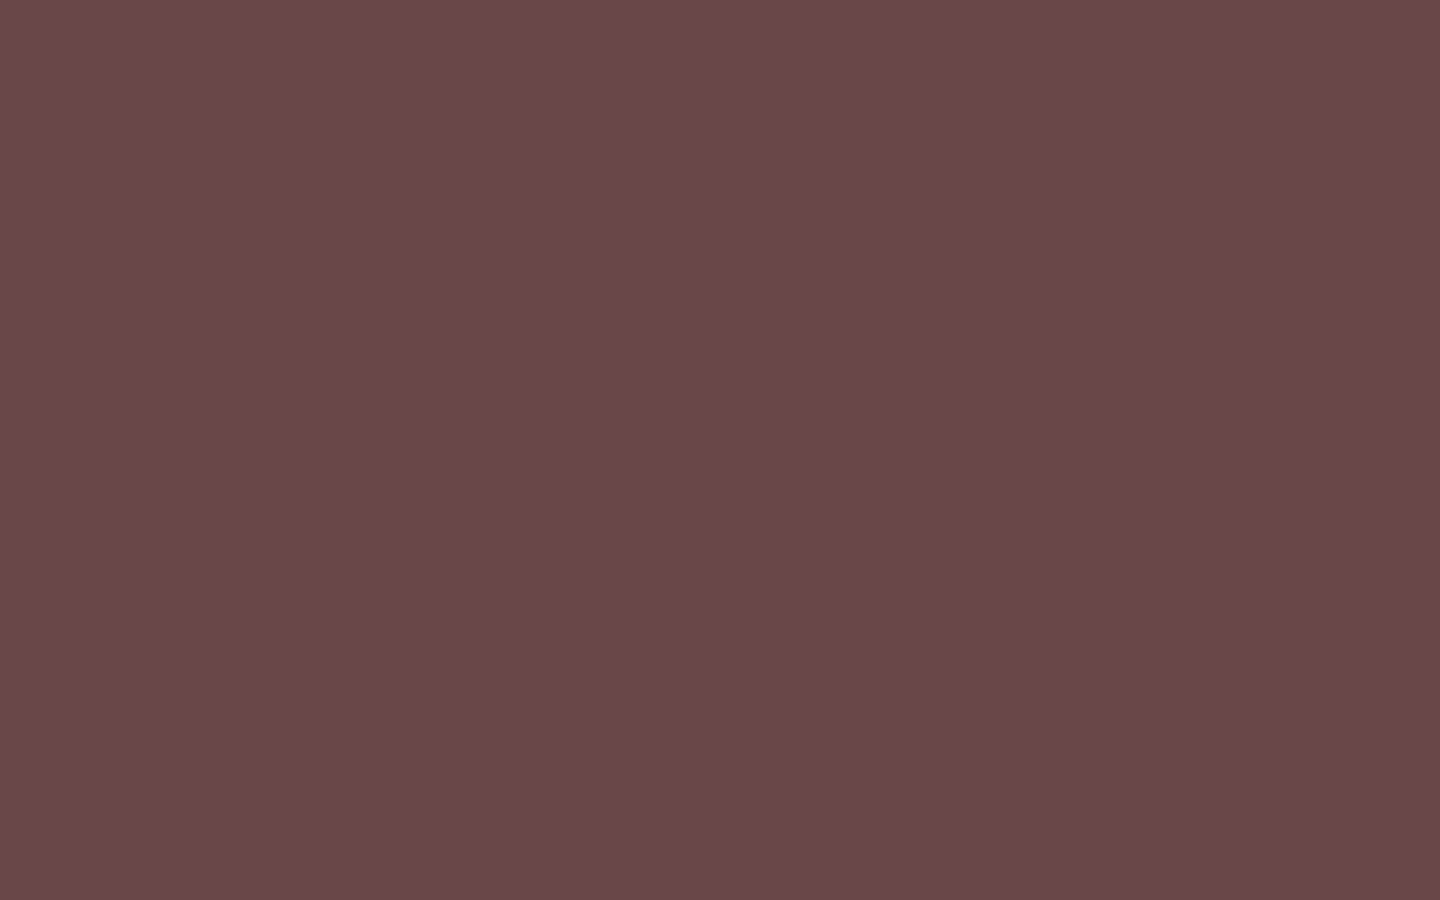 1440x900 Rose Ebony Solid Color Background